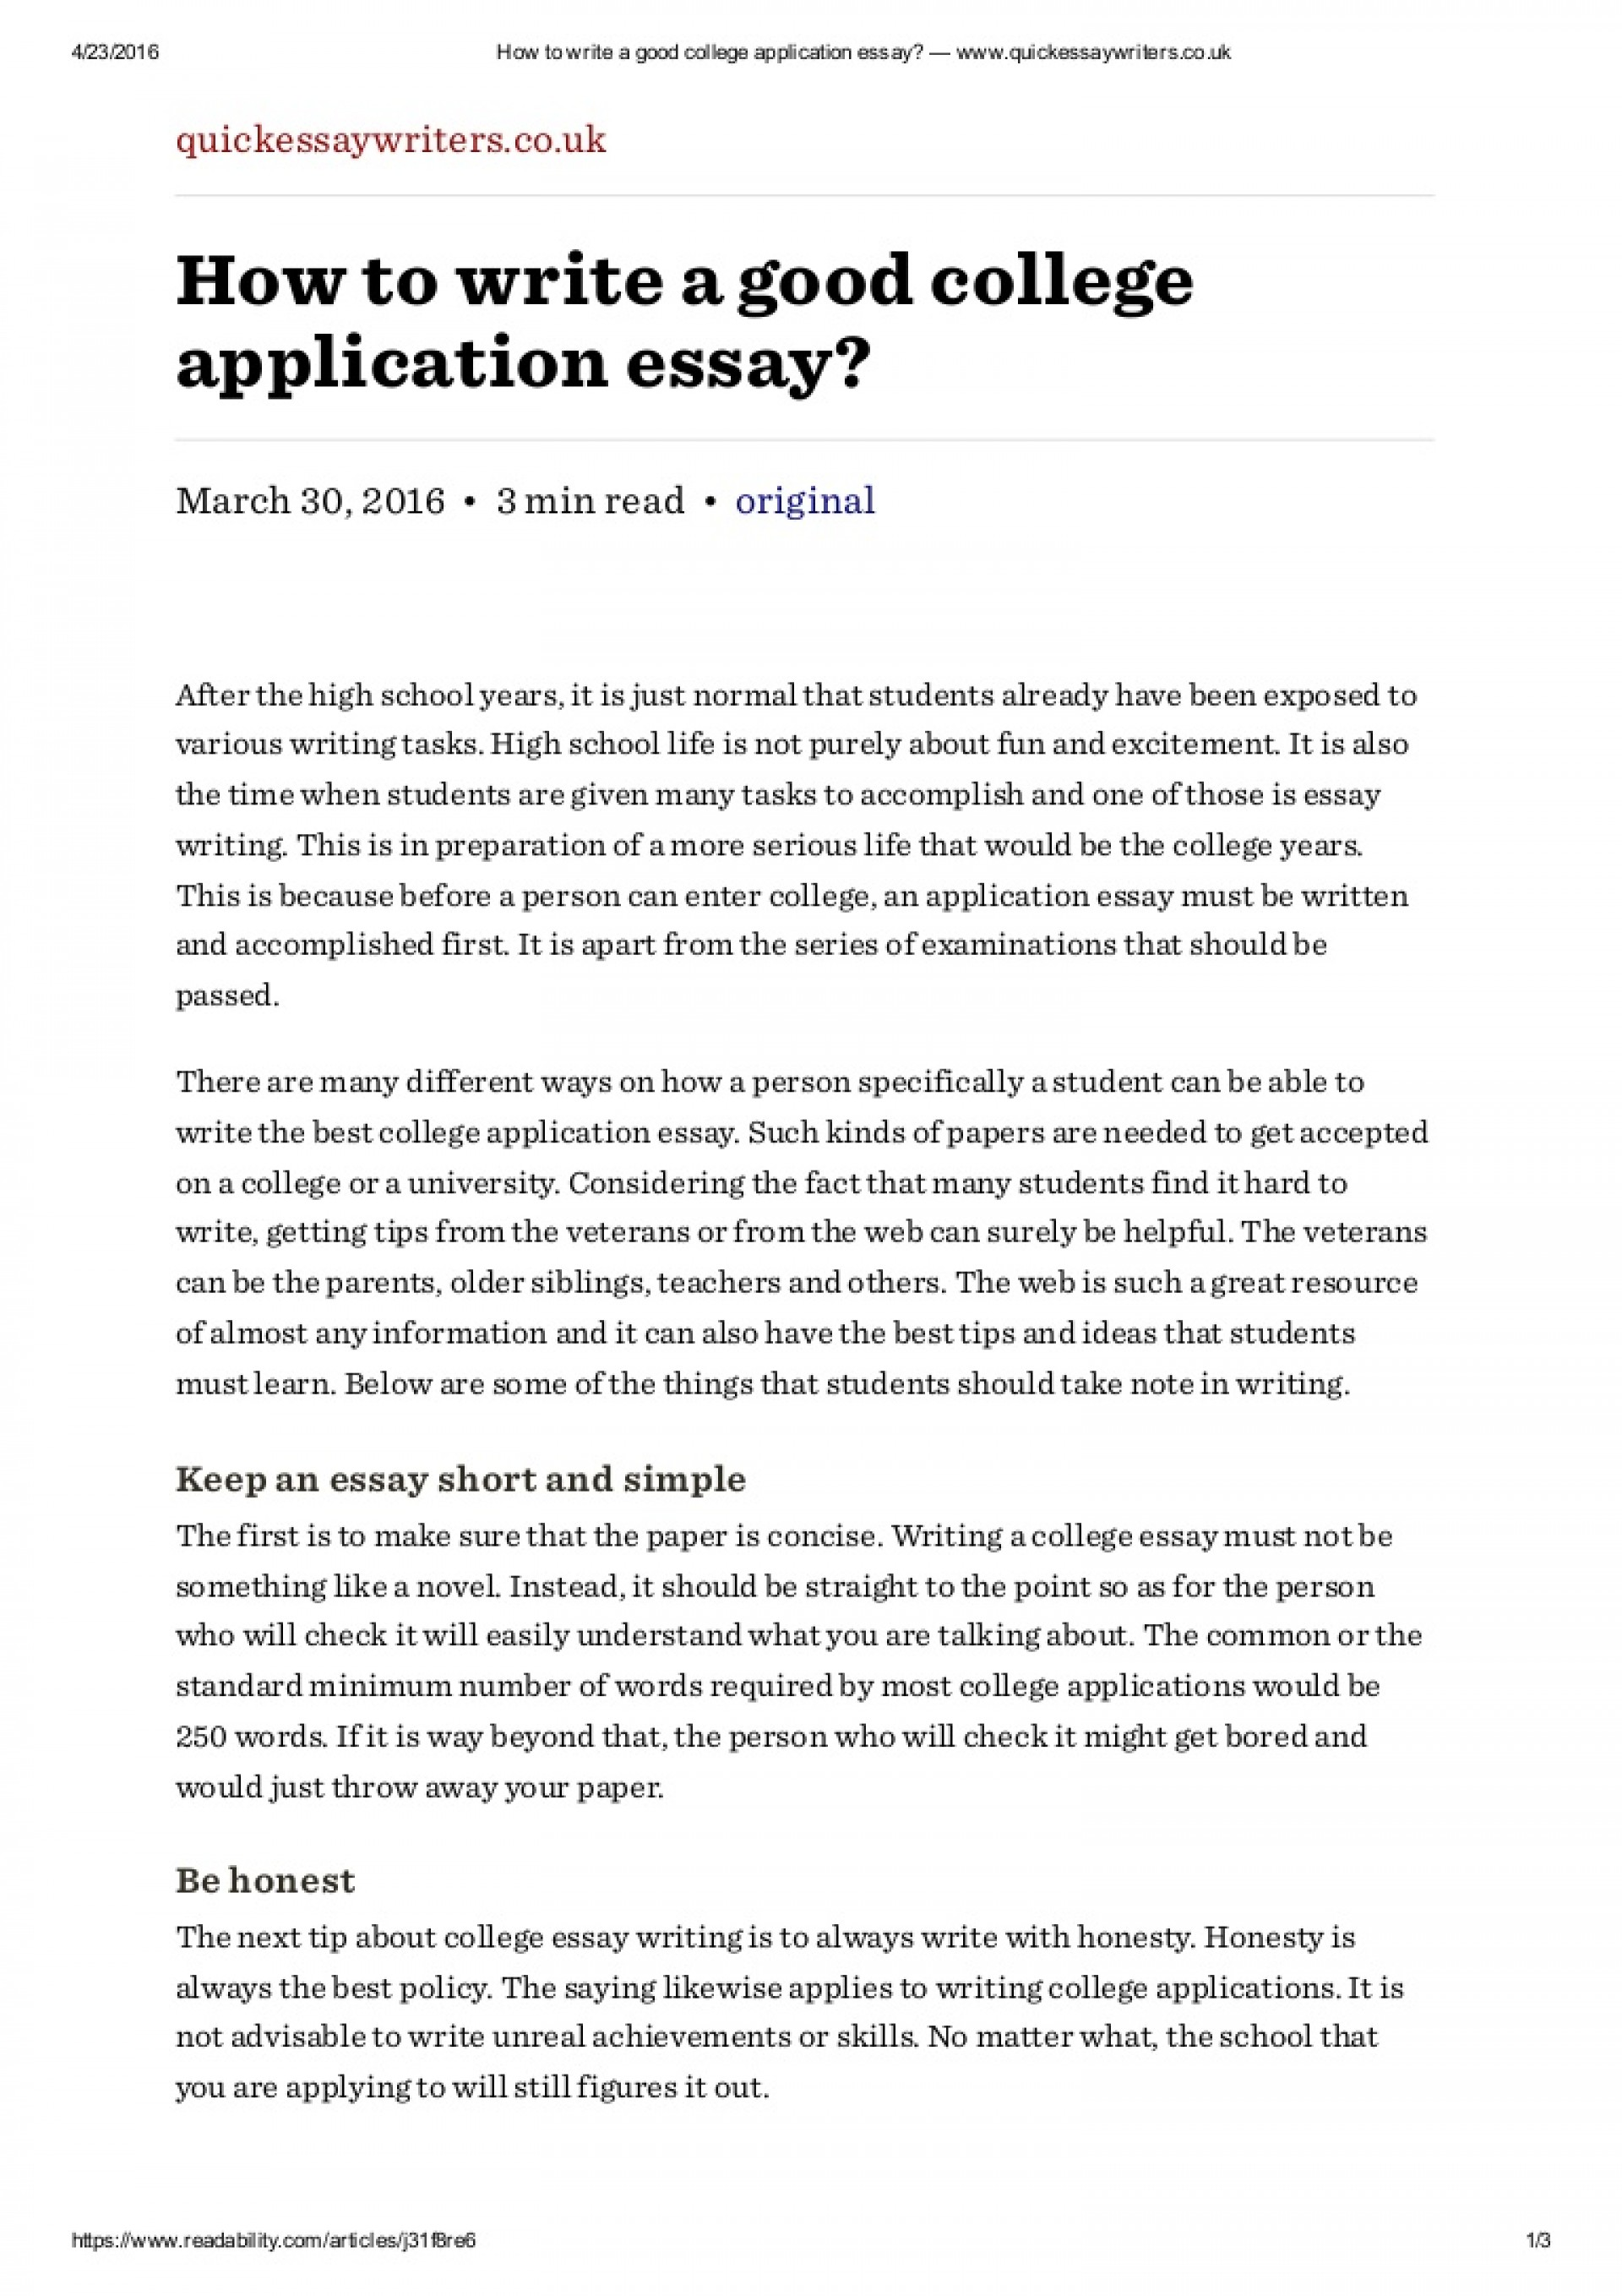 003 Essay Example College Length What To Write In Application Letter How Start App Tips Examples Writing Samples Topics Format Outline Ideas Stirring Common Personal Board 1920